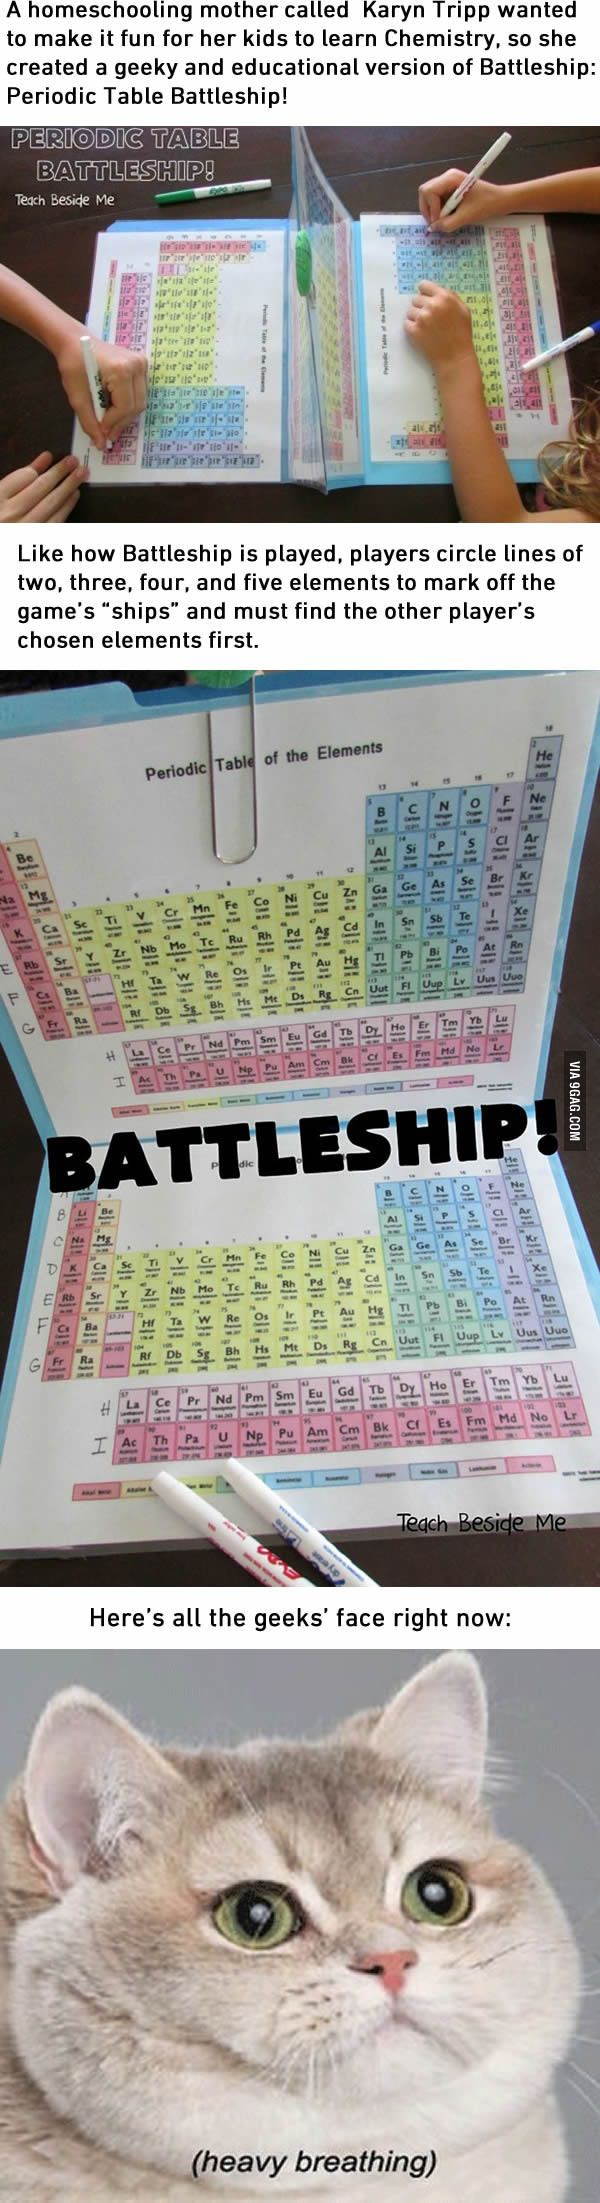 I'd have loved Chemistry a lot more with this Periodic Table Battleship - 9GAG